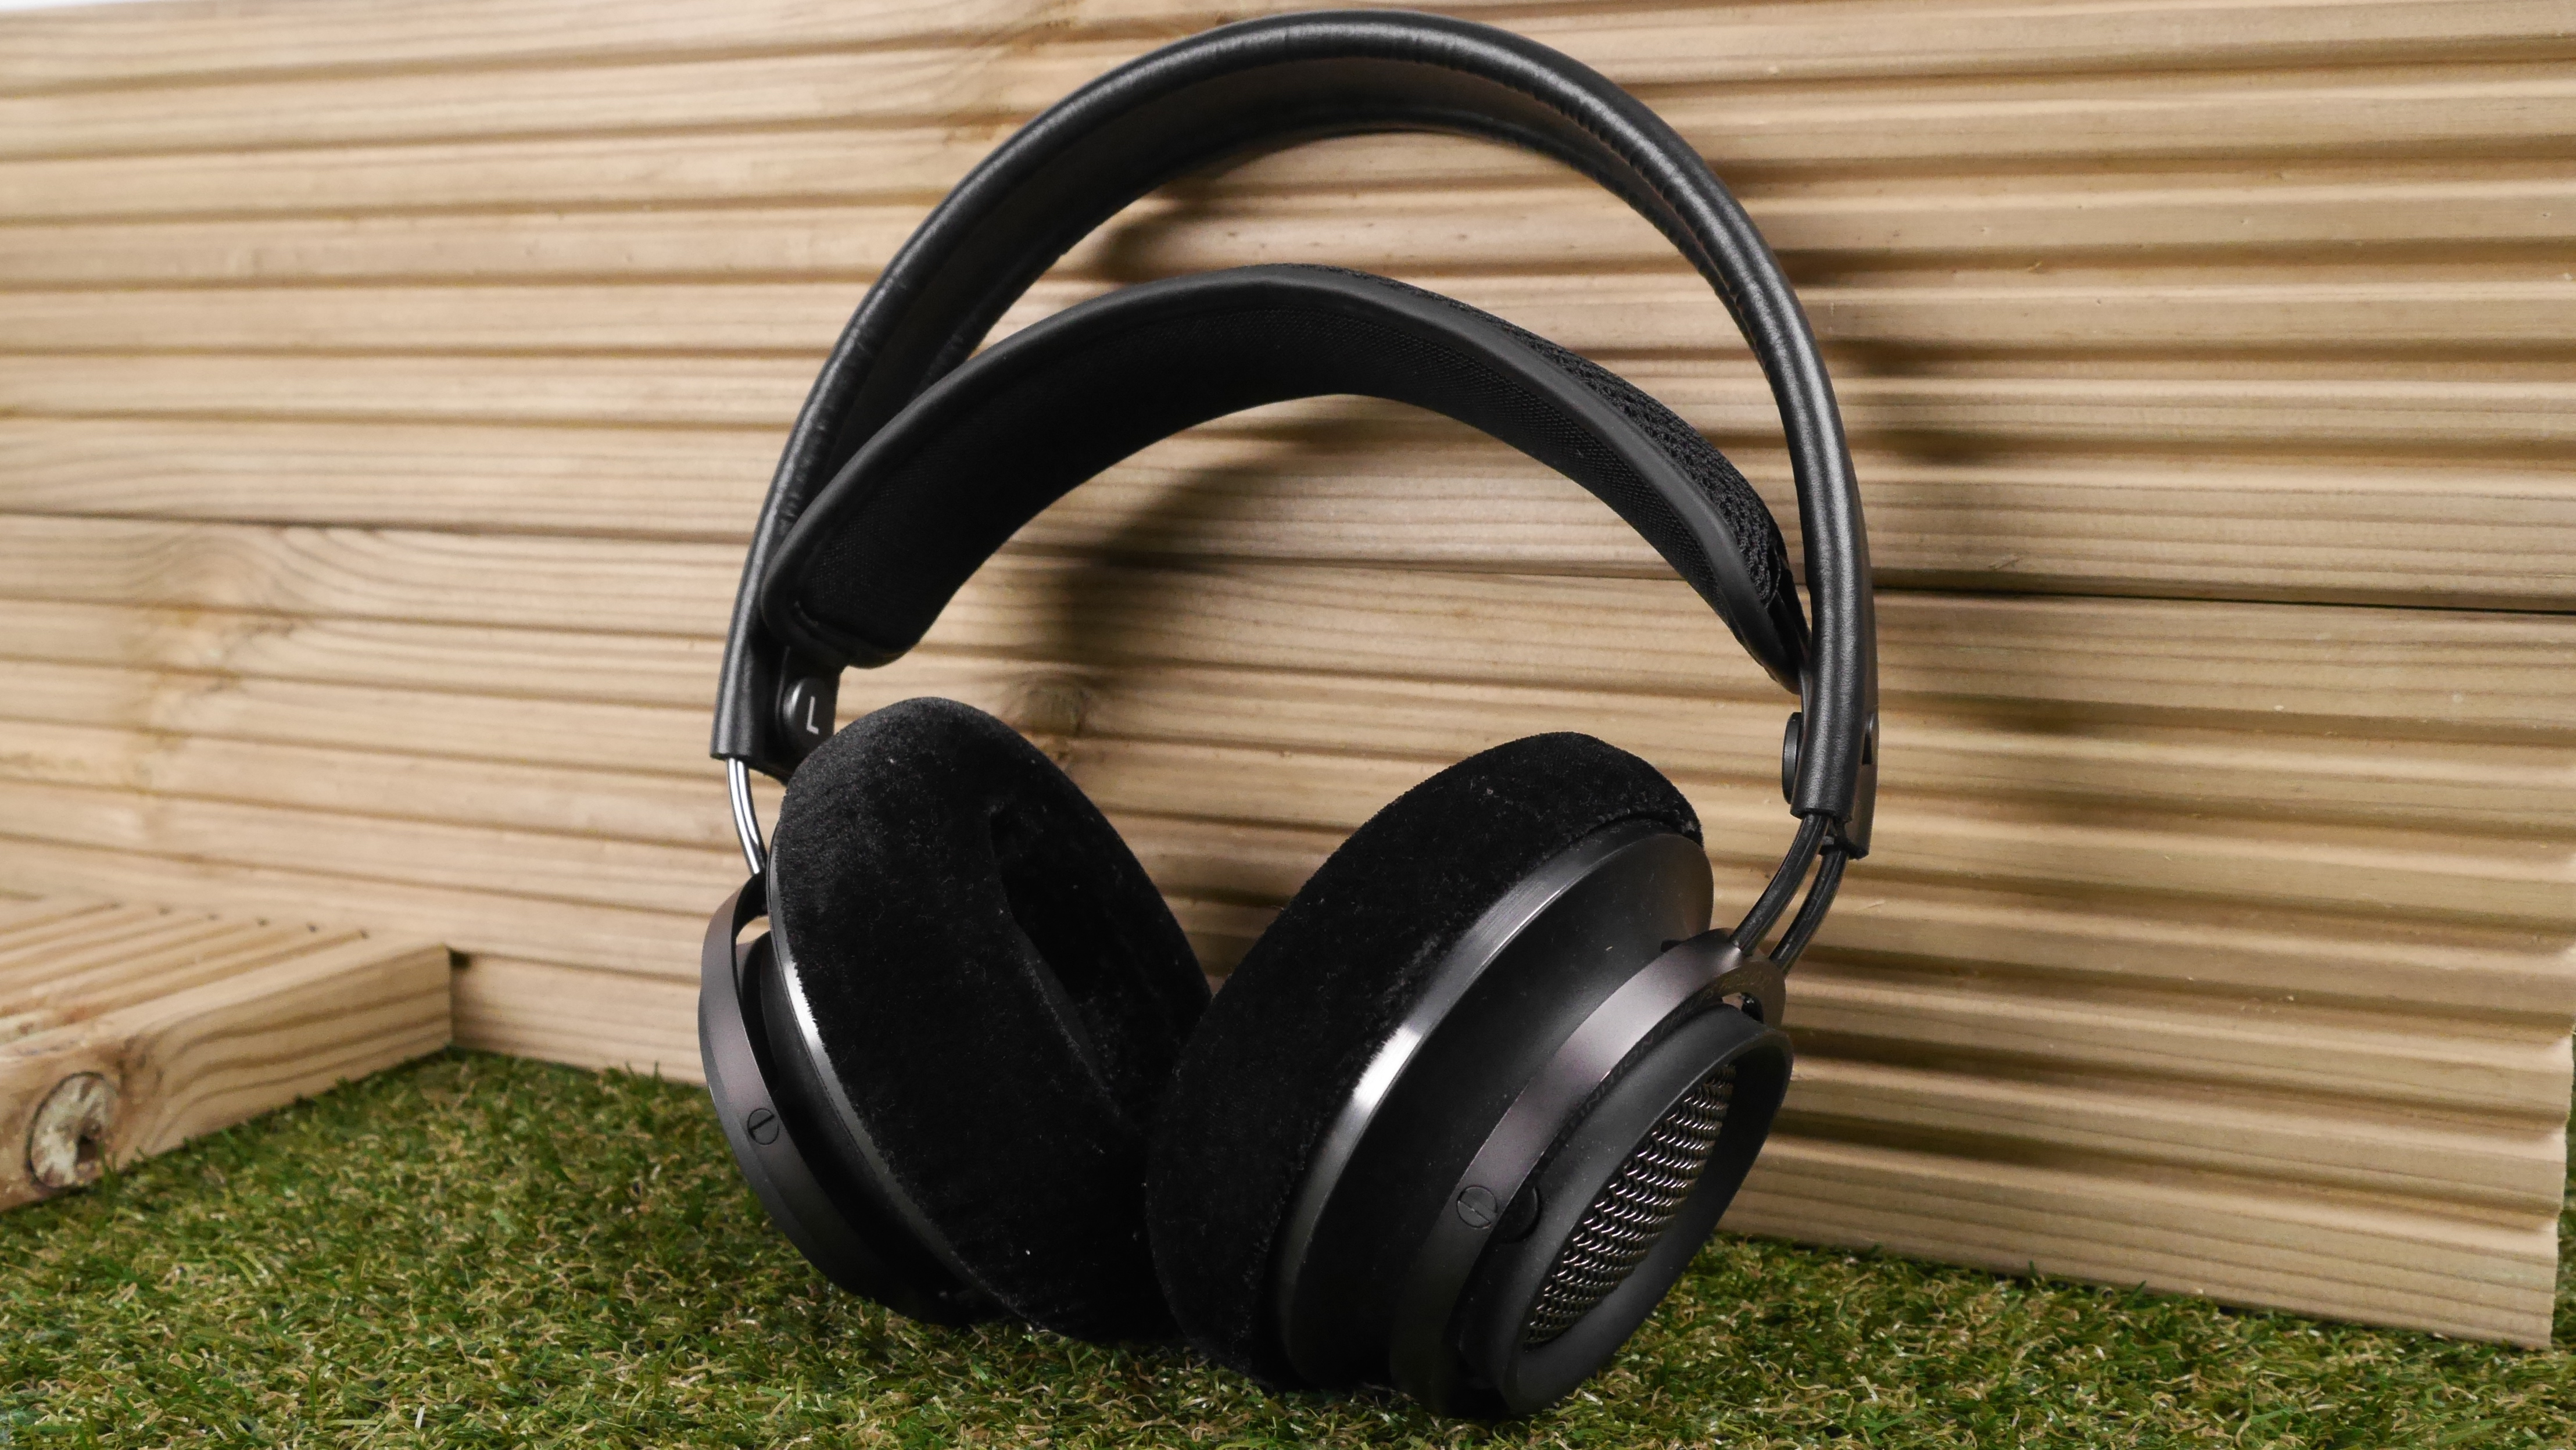 Image Result For Over Ear Headphone Reviews